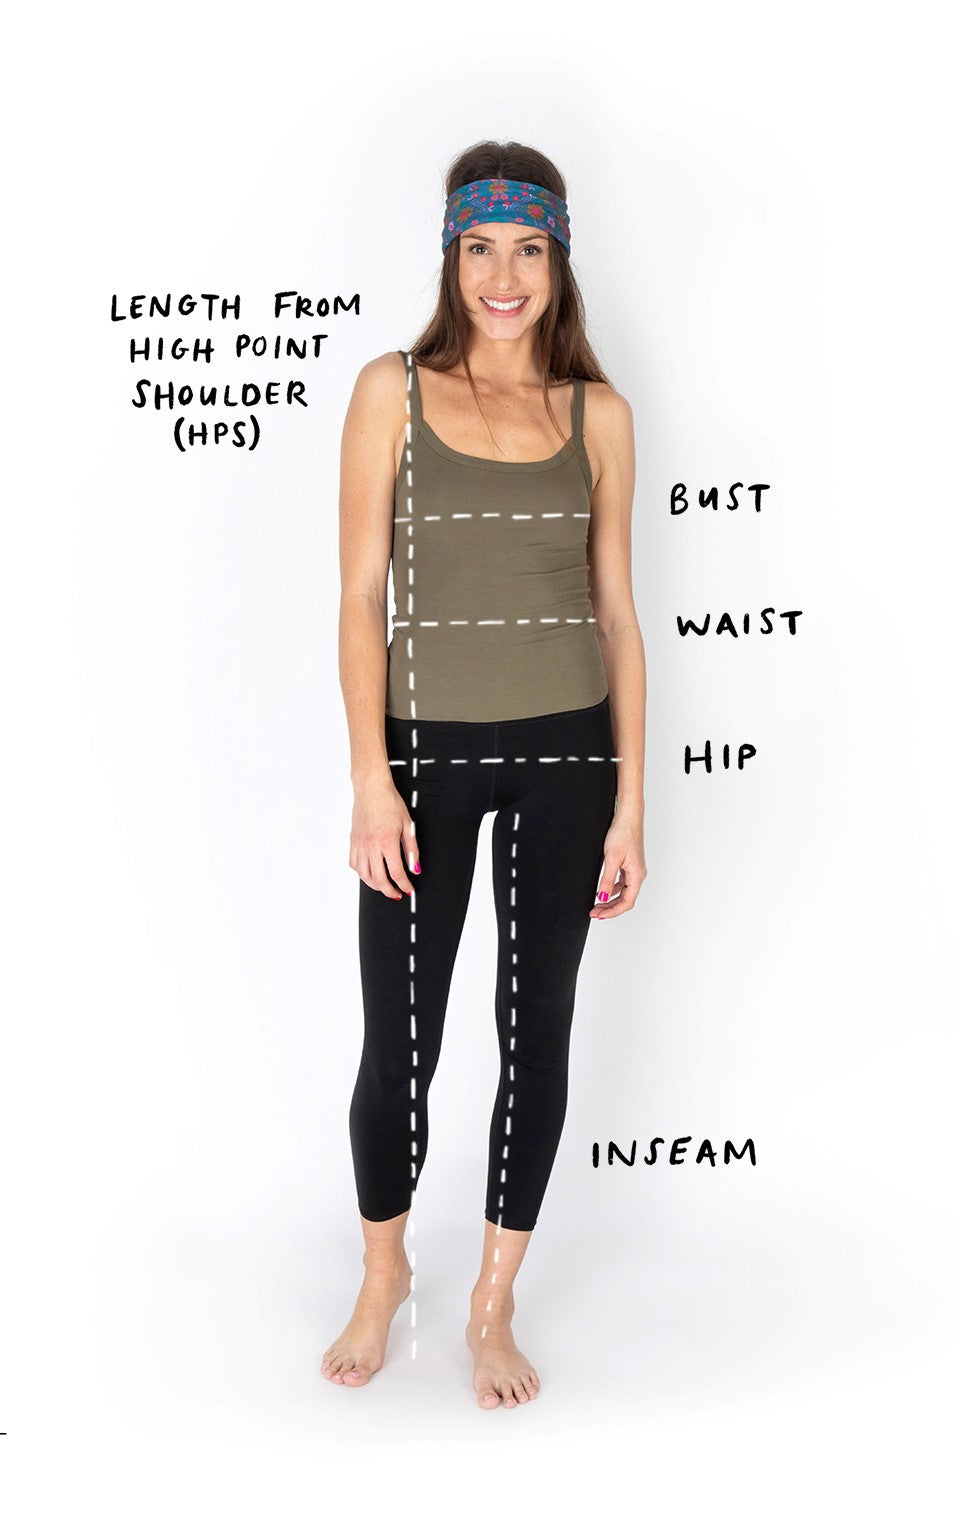 Size chart describig how to measure length from height to shoulder, bust, waist and hip